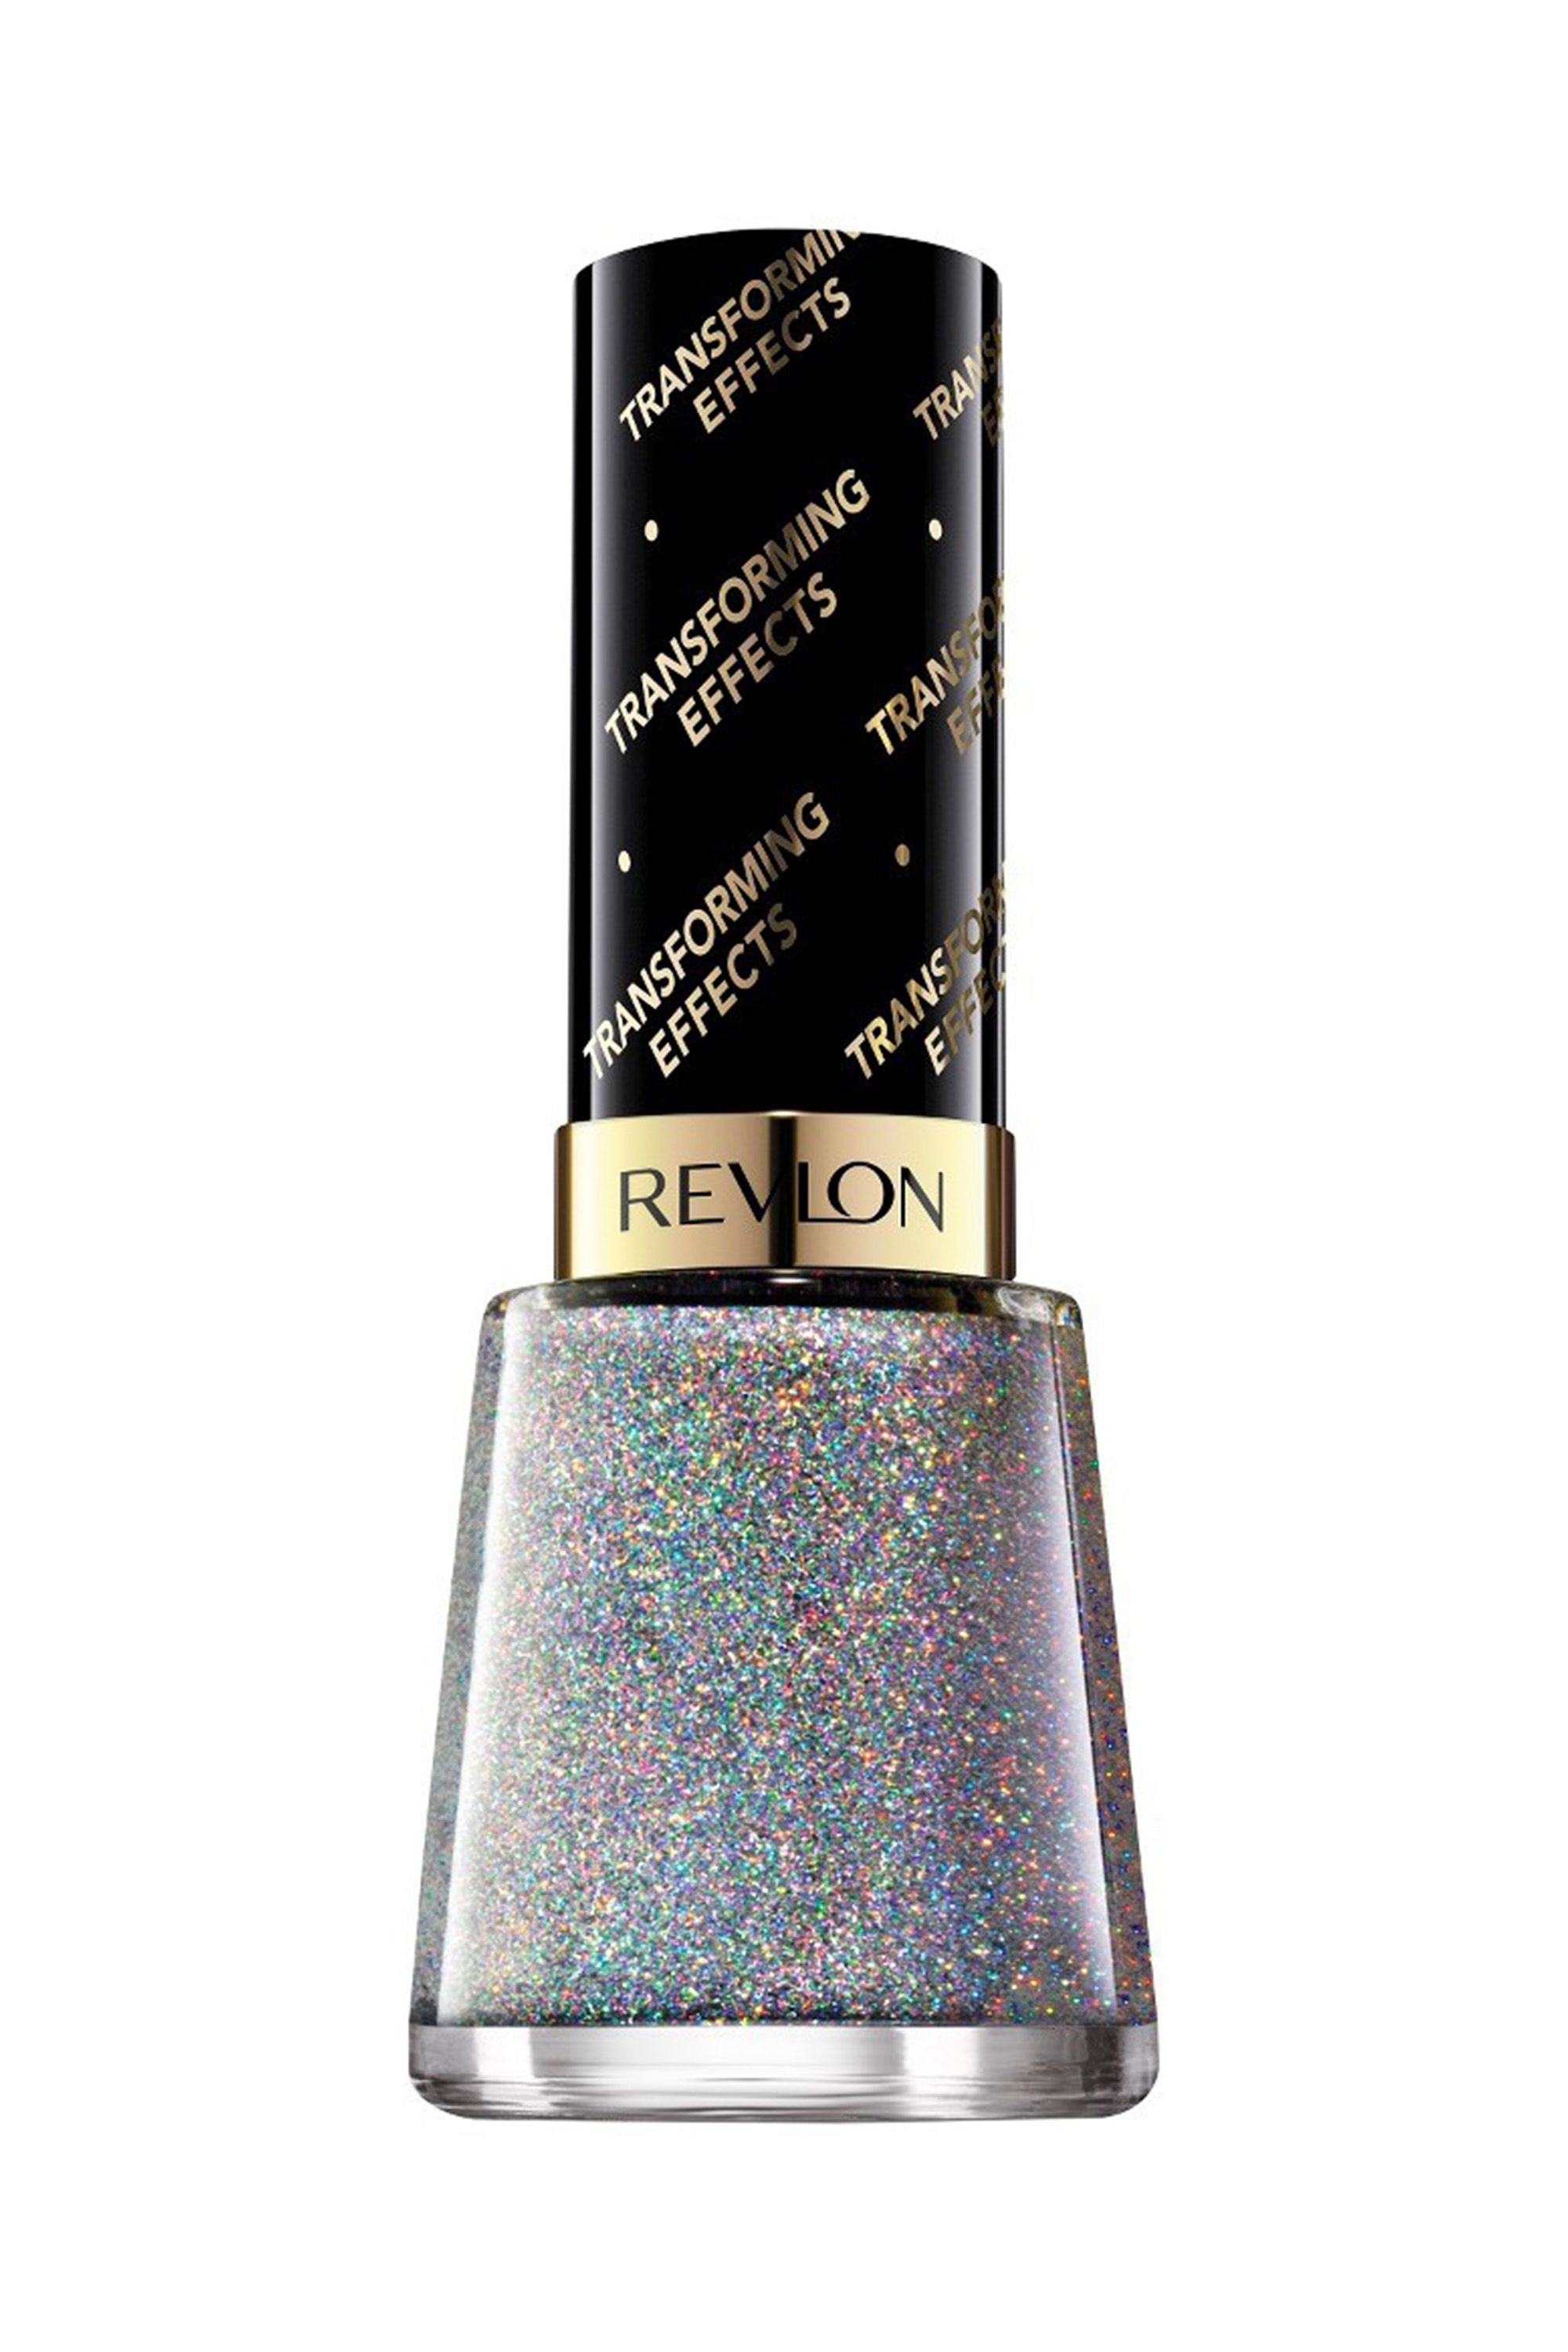 "<p>Revlon Transforming Effects Top Coat in Holographic Pearls, $4; <a href=""https://www.walmart.com/ip/Revlon-Transforming-Effects-Top-Coat-0.5-fl-oz/43198964?wmlspartner=wlpa&adid=22222222227031471528&wl0=&wl1=g&wl2=c&wl3=53617041872&wl4=pla-112444208432&wl5=9004358&wl6=&wl7=&wl8=&wl9=pla&wl10=8175035&wl11=online&wl12=43198964&wl13=&veh=sem"" target=""_blank"" data-tracking-id=""recirc-text-link"">walmart.com</a><span class=""redactor-invisible-space"" data-verified=""redactor"" data-redactor-tag=""span"" data-redactor-class=""redactor-invisible-space""></span></p>"